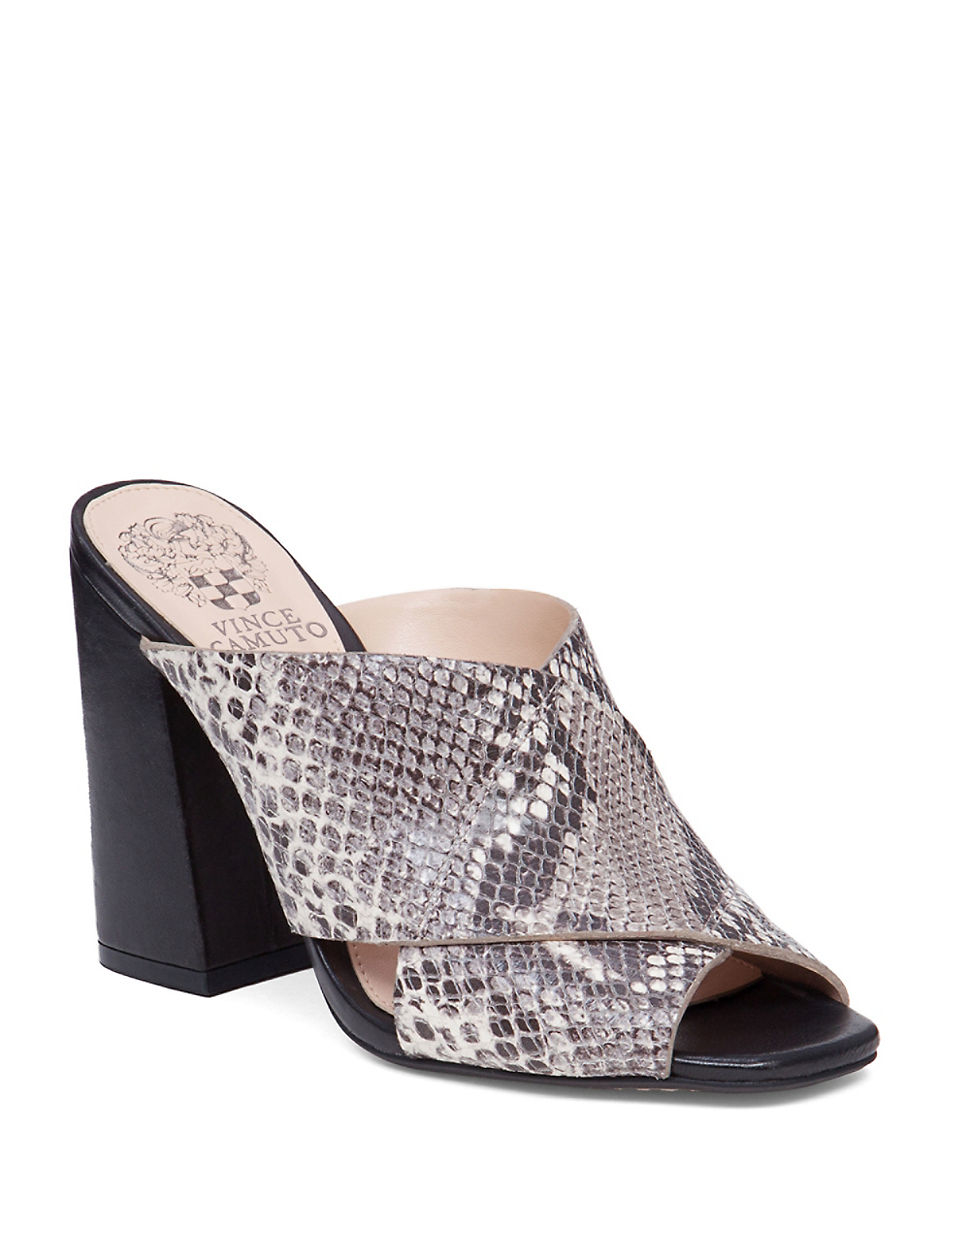 Vince Camuto Jevan Snake Embossed Leather Mules In Black